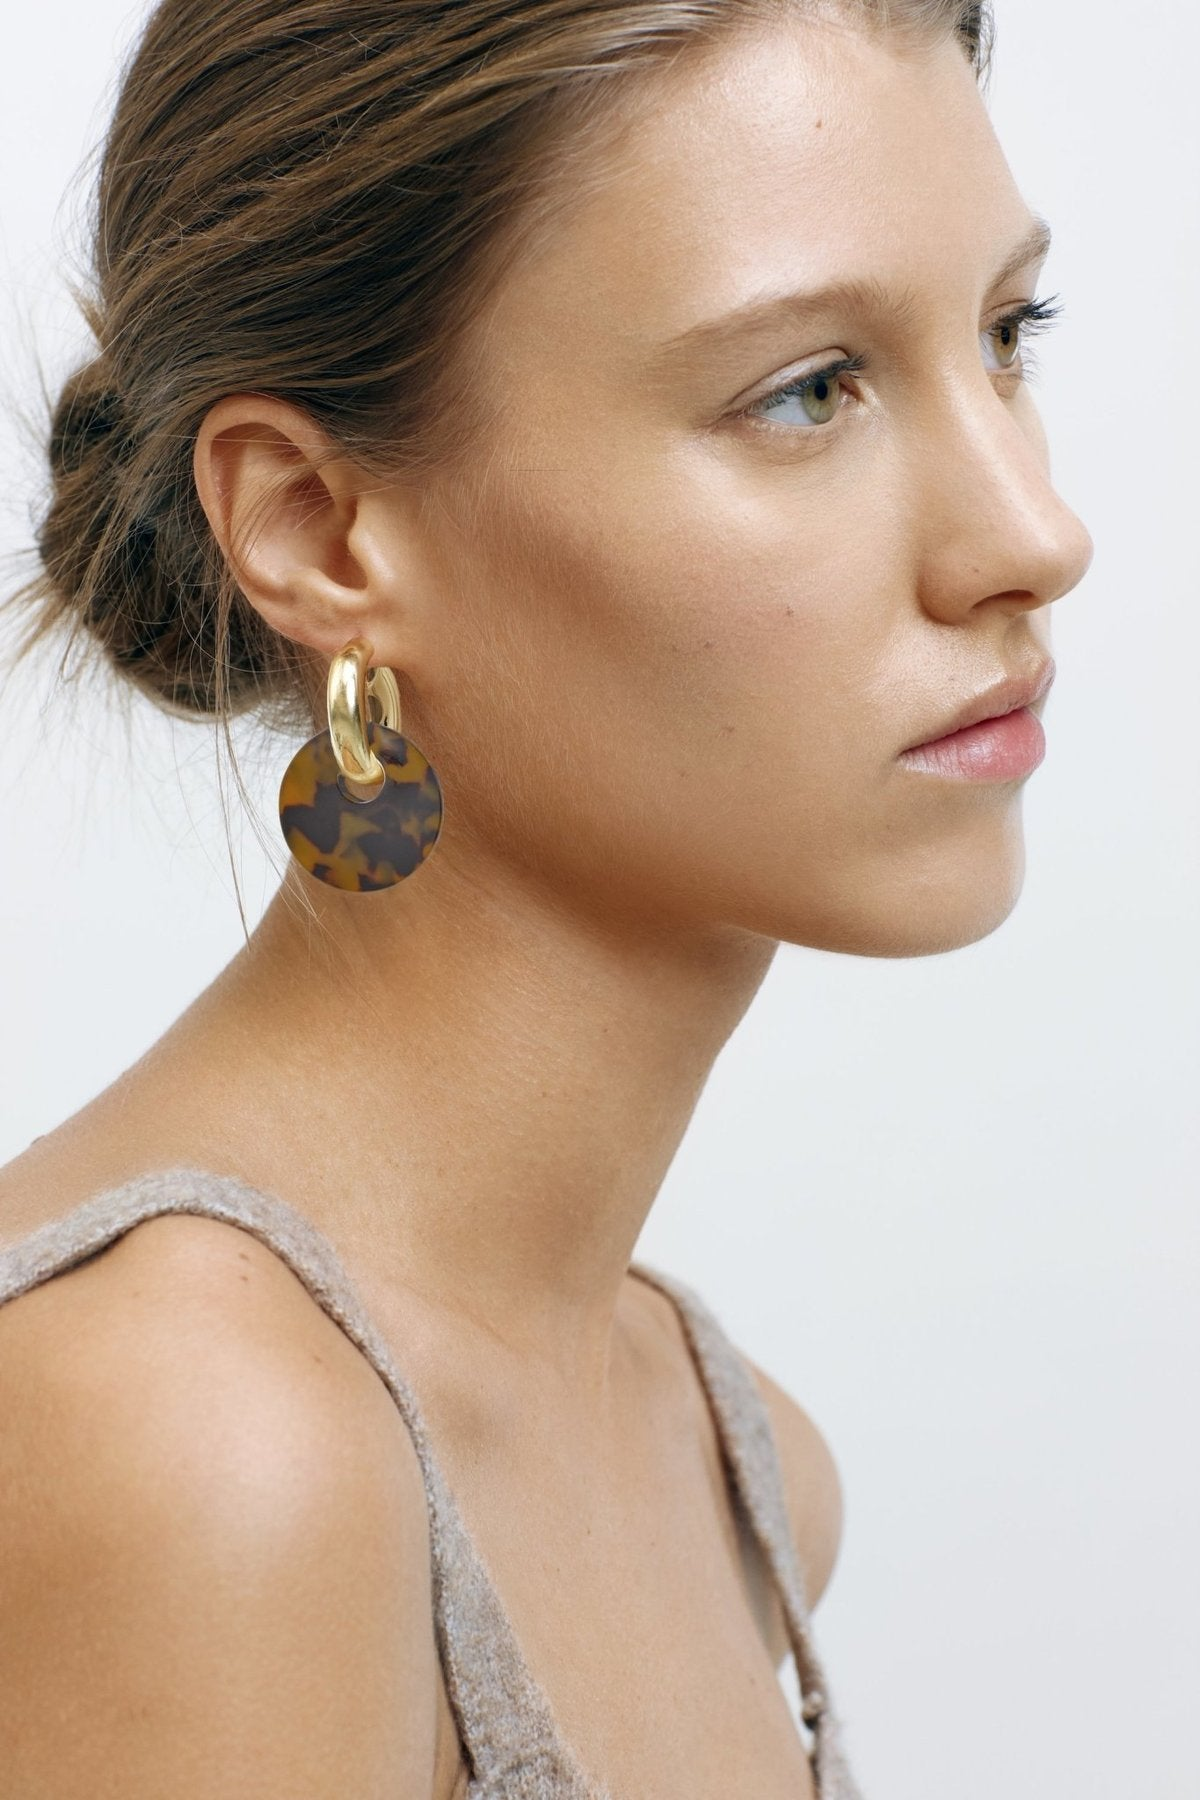 MACHETE - CHUNKY HOOPS IN GOLD WITH TORTOISE CHARM